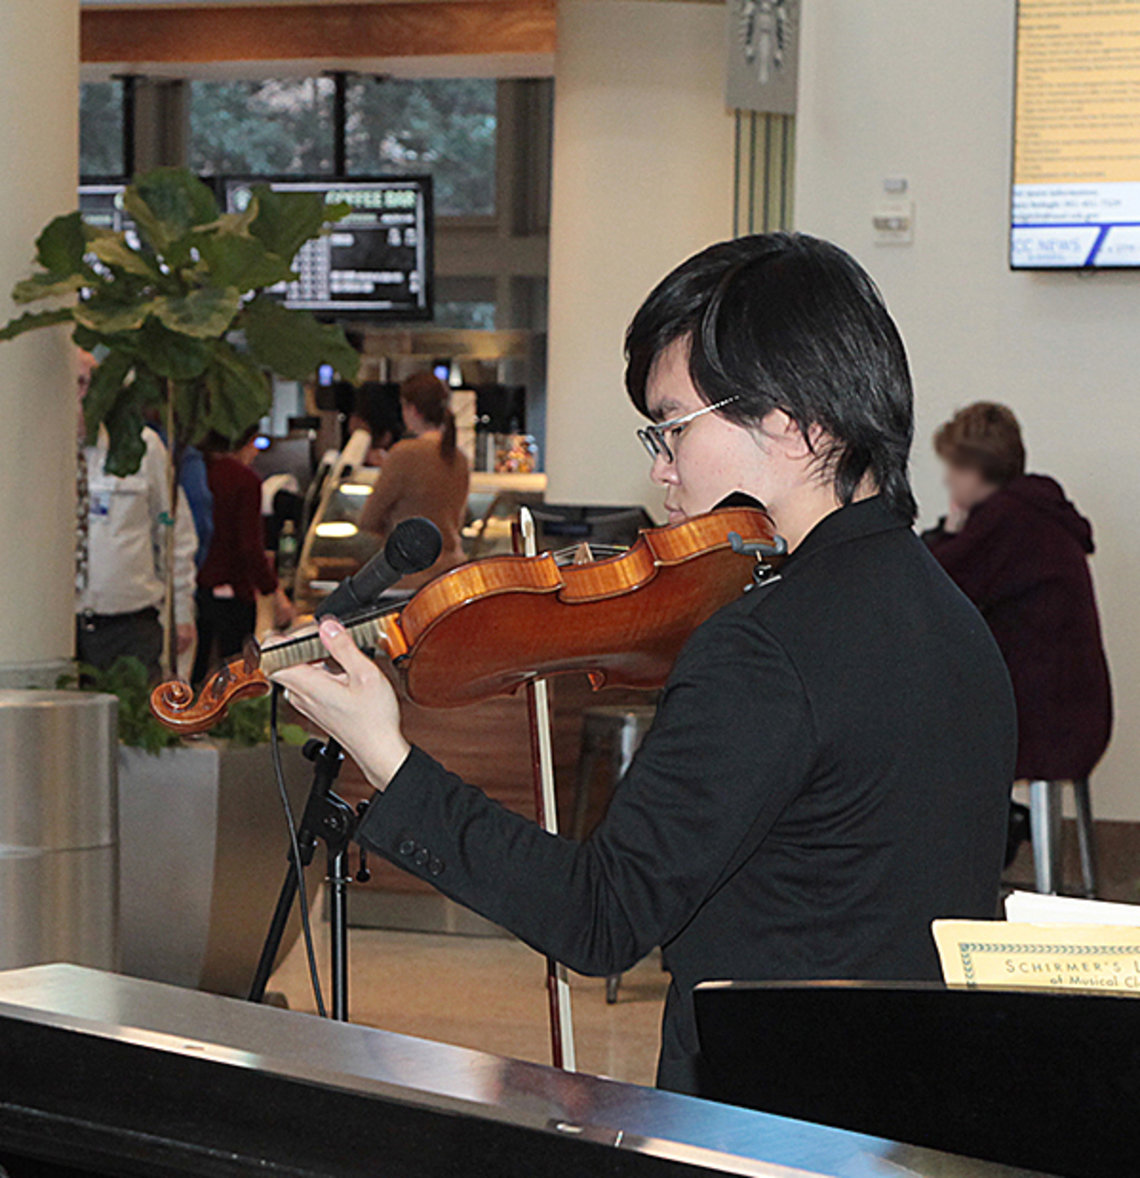 Pianist, violinist perform classical music in CC atrium.